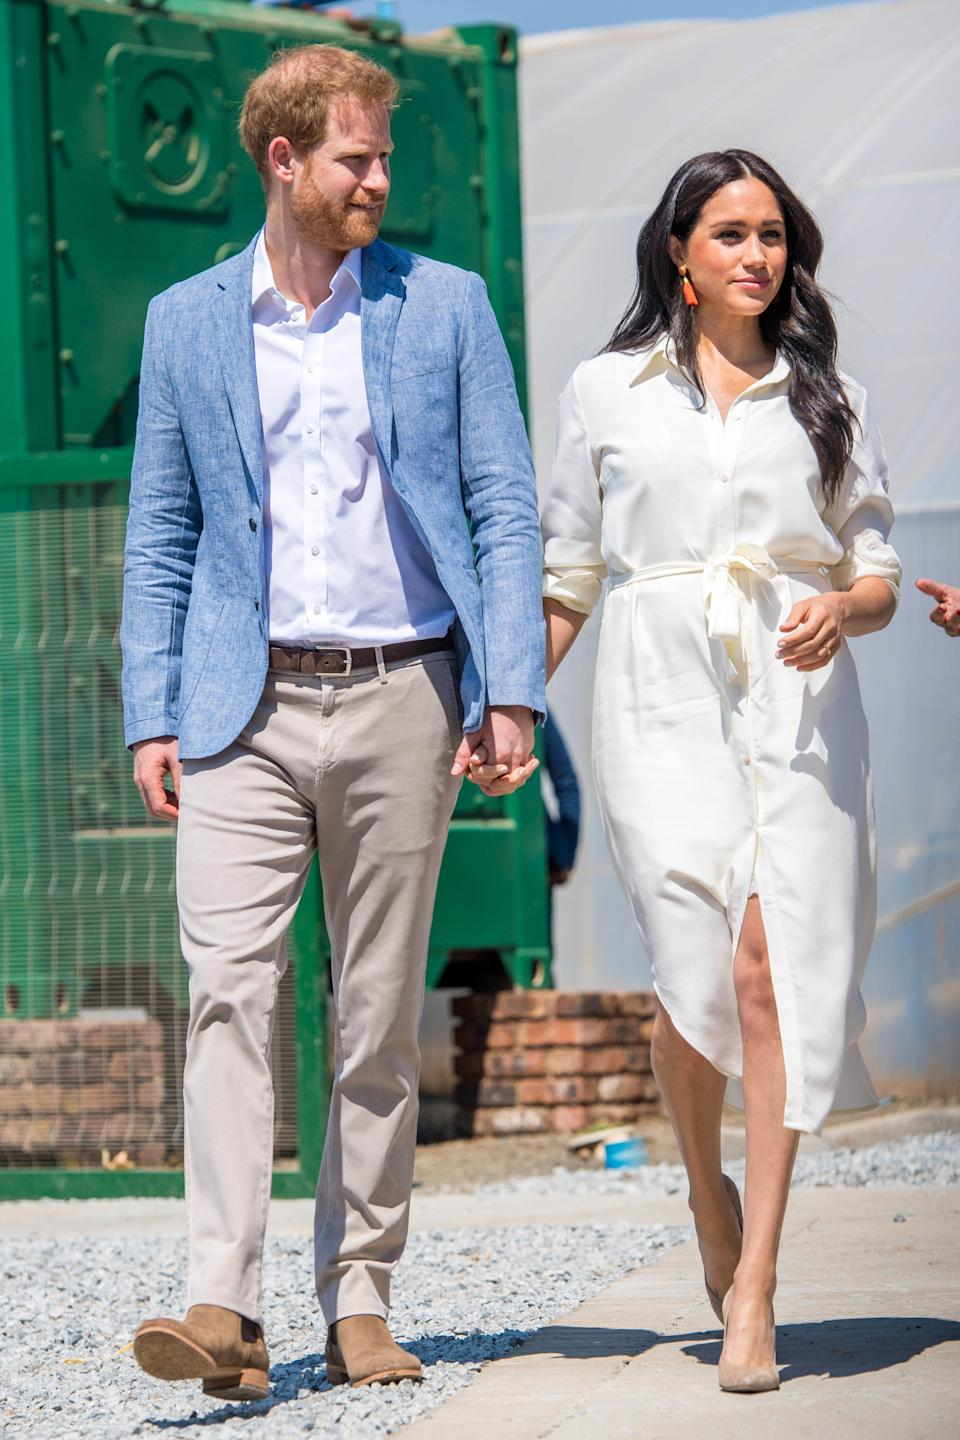 Meghan Markle, Duchess of Sussex, and Prince Harry visits the Youth Employment Services Hub in Tembisa township, Johannesburg, South Africa on October 2, 2019. They met inspiring local youth entrepreneurs and viewed skills initiatives addressing the rising unemployment challenge faced by youth in South Africa. (Photo by PPE/v.d. Werf/Sipa USA)